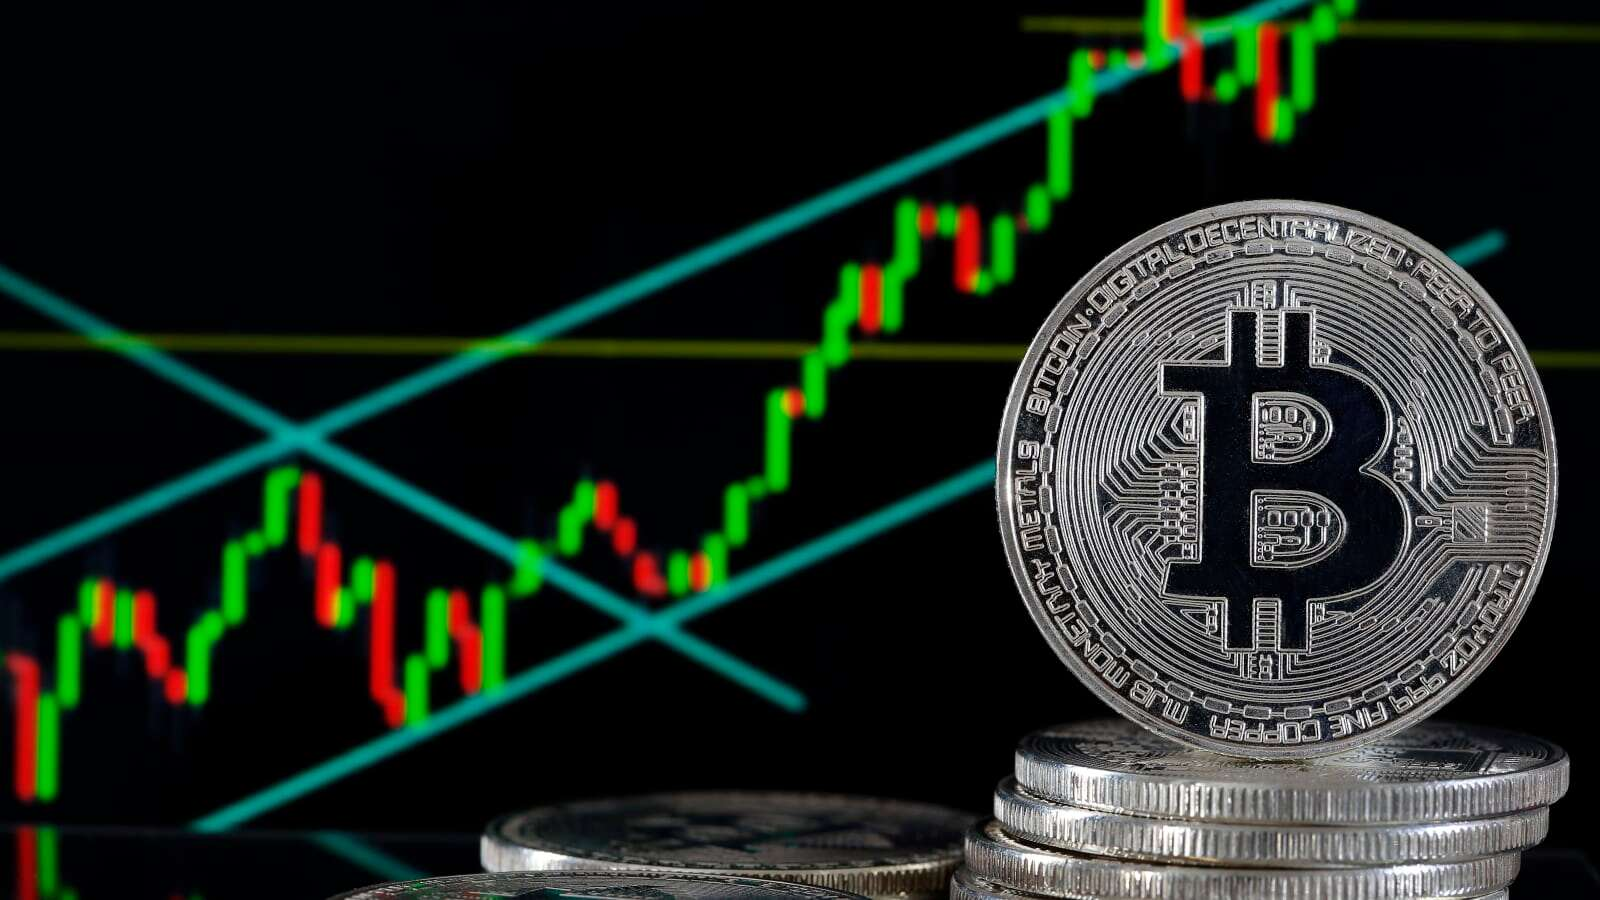 Institutional Inflows Into Bitcoin Sees Significant Increase After 8-Week Dry Spell